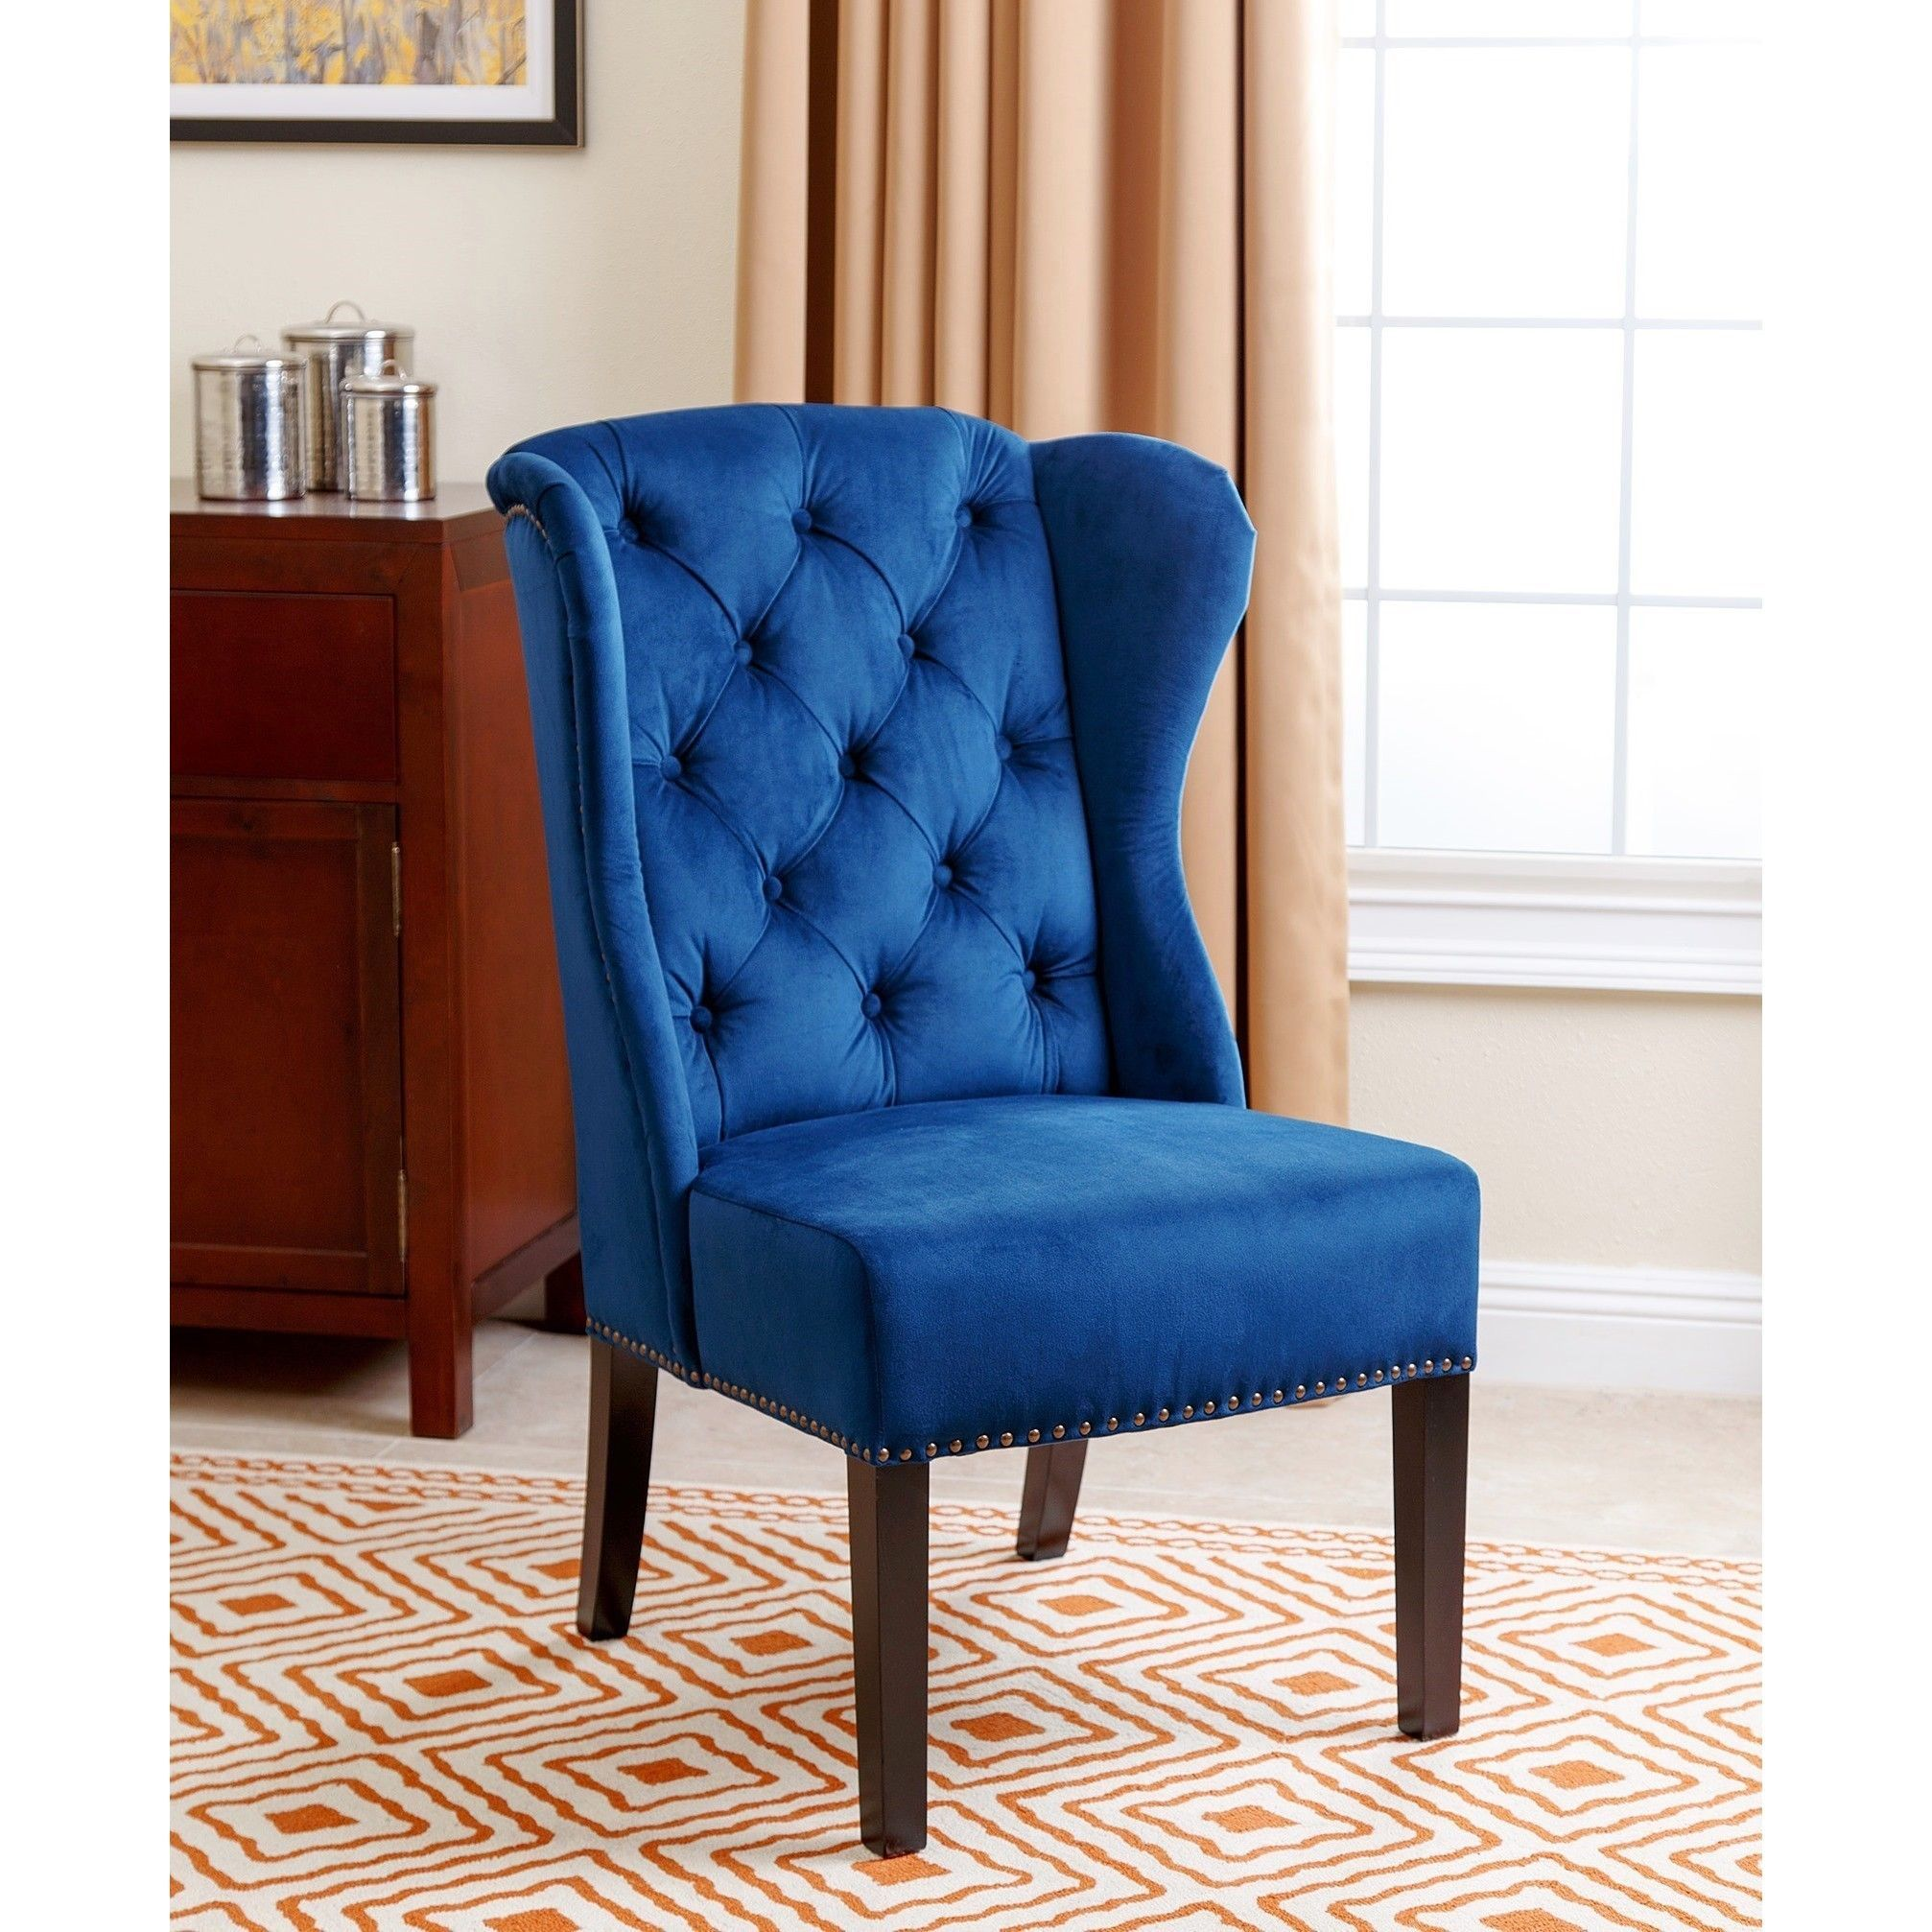 tufted wingback dining chair room chairs with cherry wood legs abbyson sierra navy blue velvet